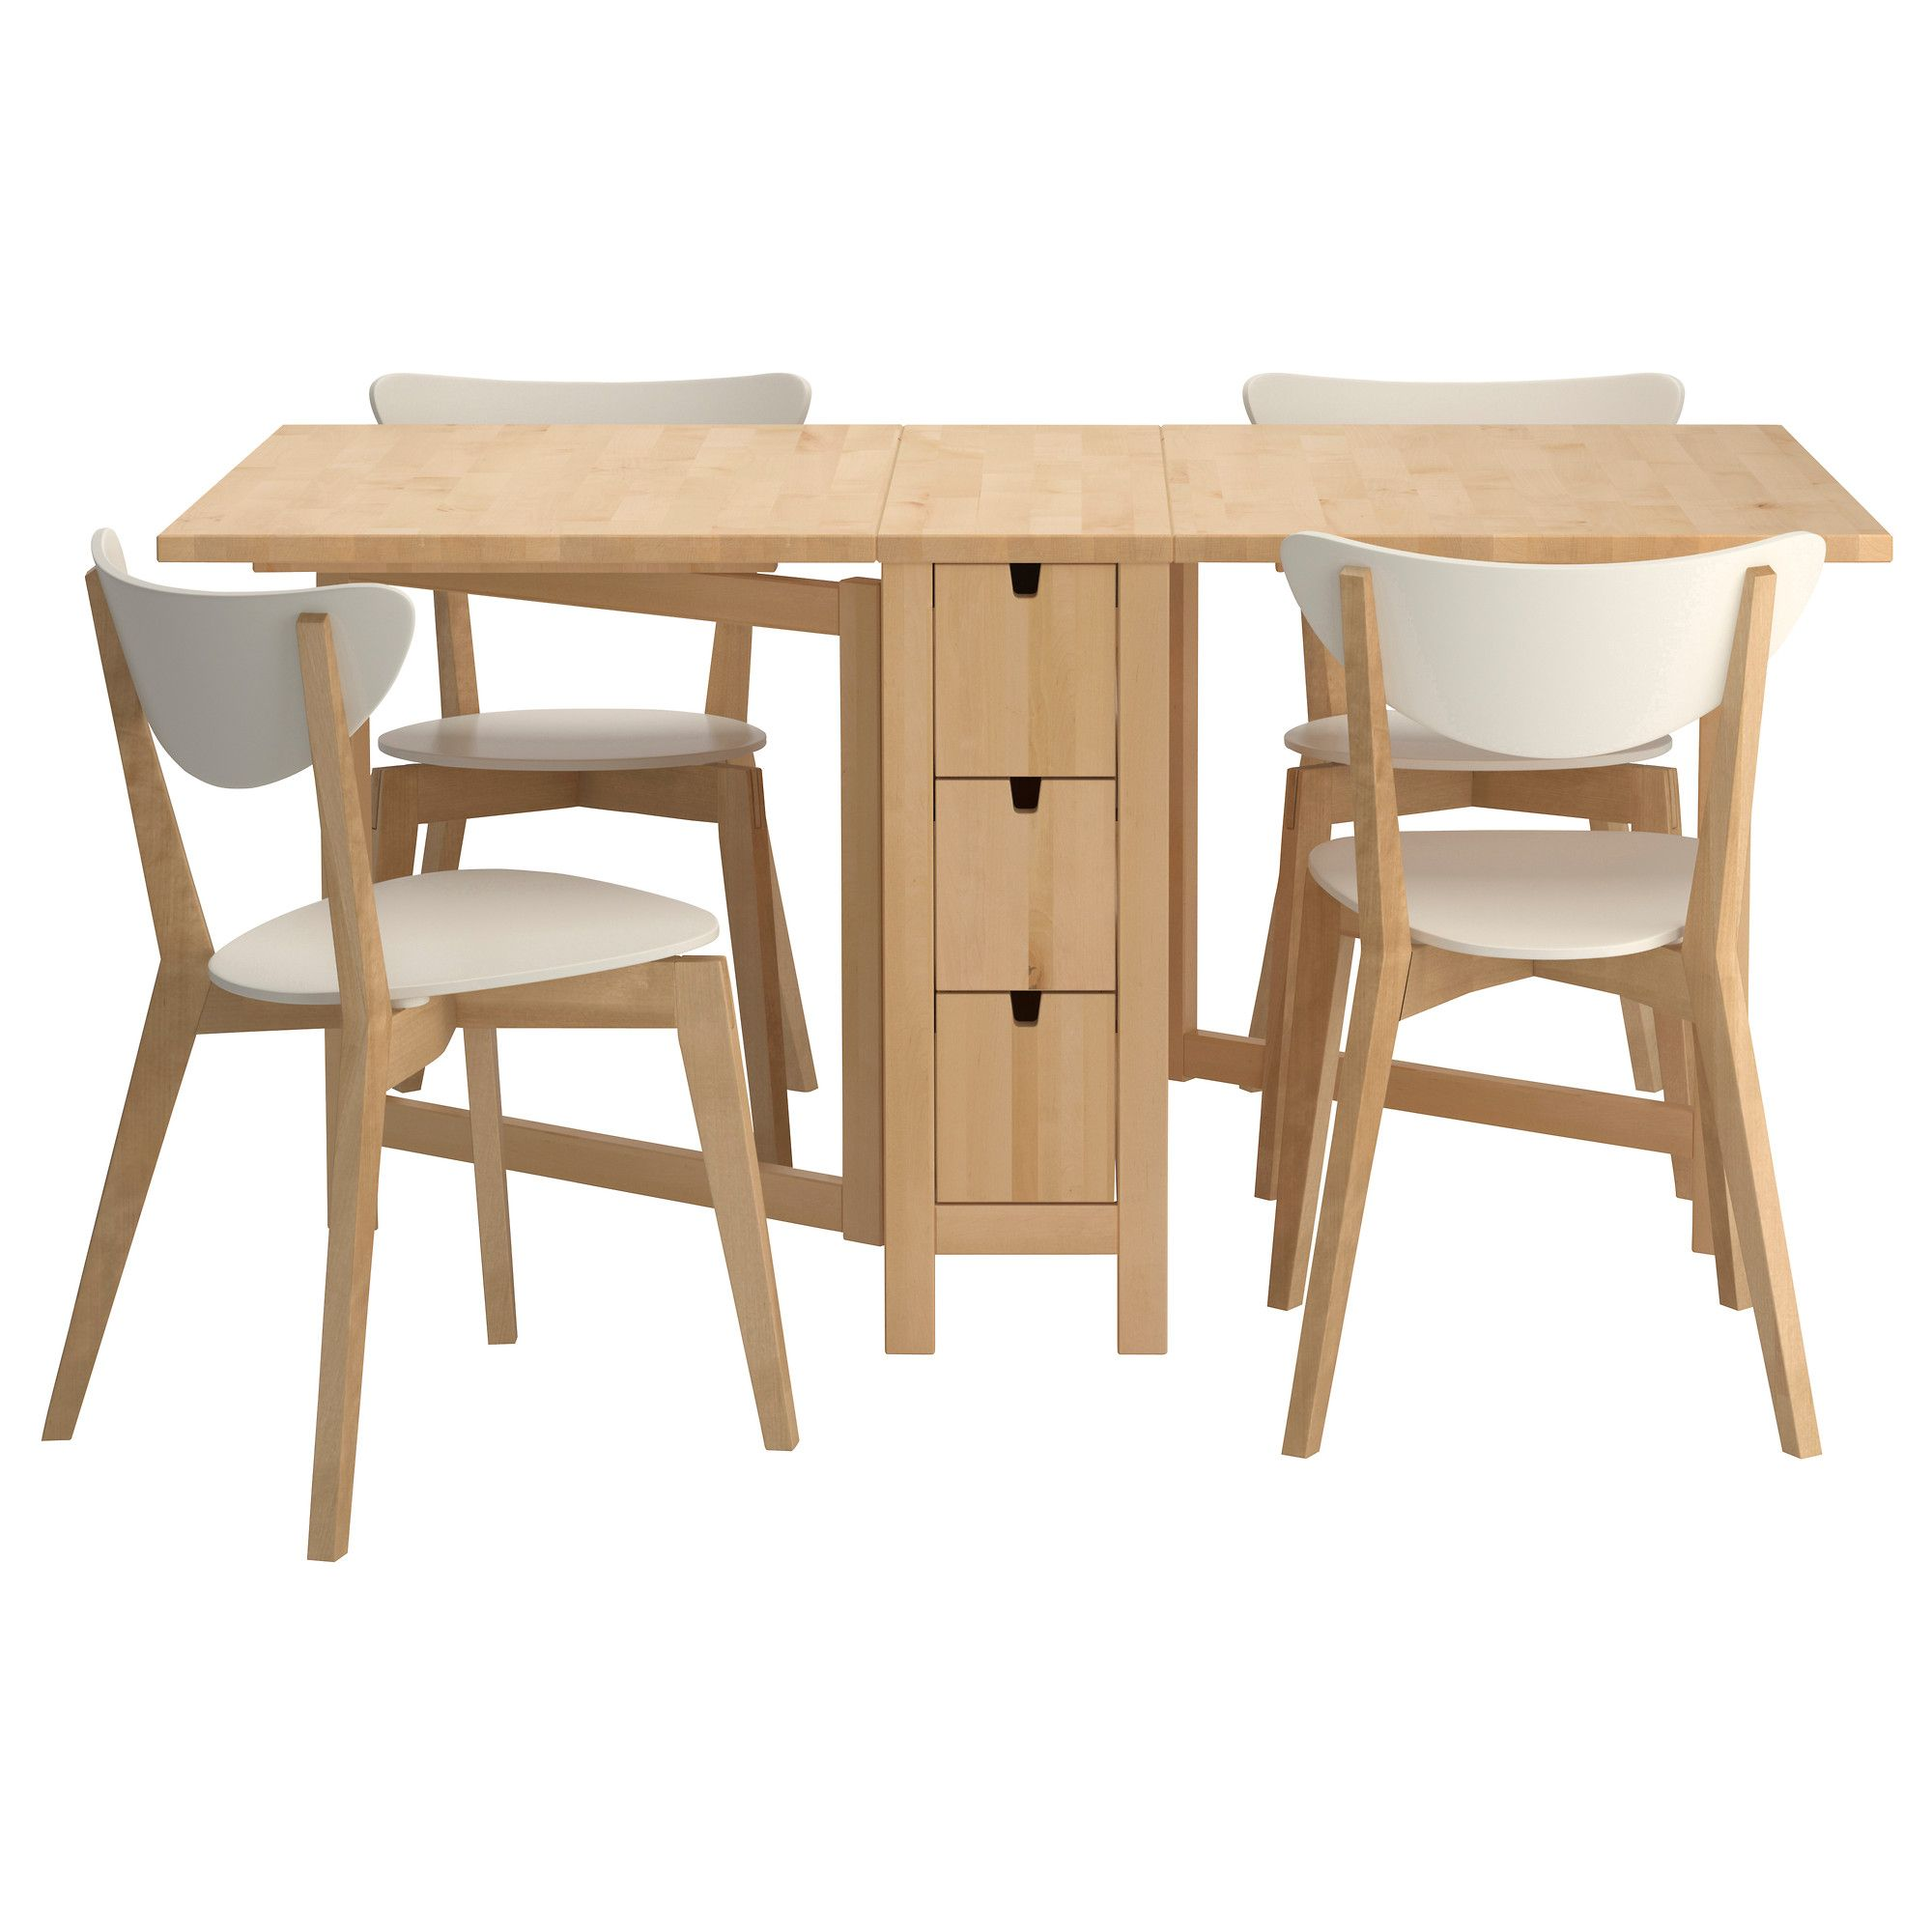 Norden nordmyra table and 4 chairs ikea for the love for Furniture dining table